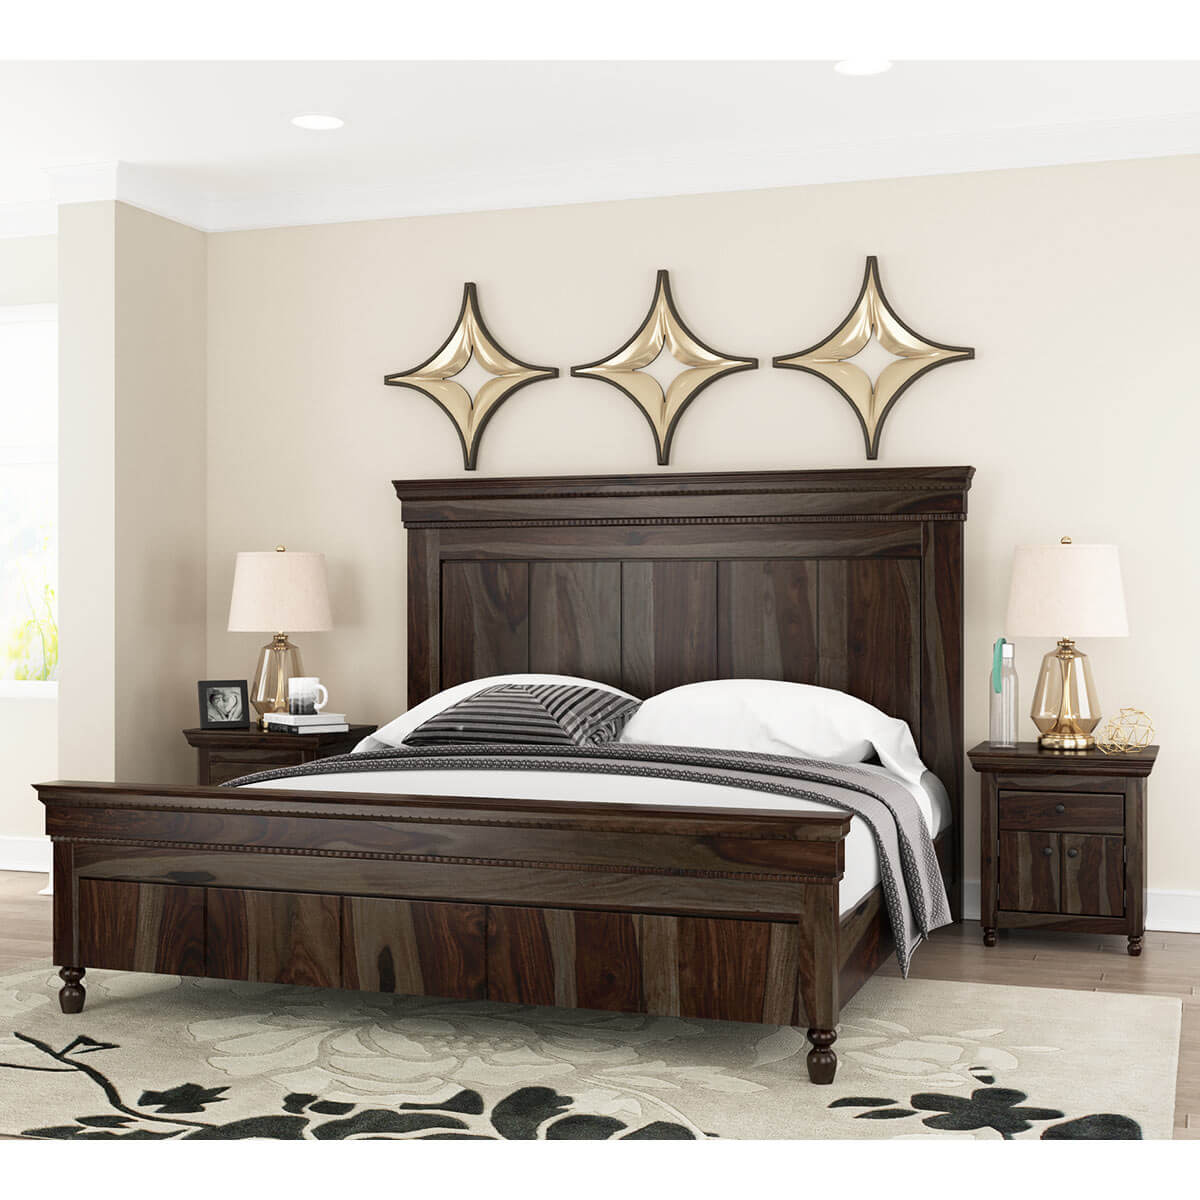 Jerold Modern Rustic Solid Wood King Size Panel Bed